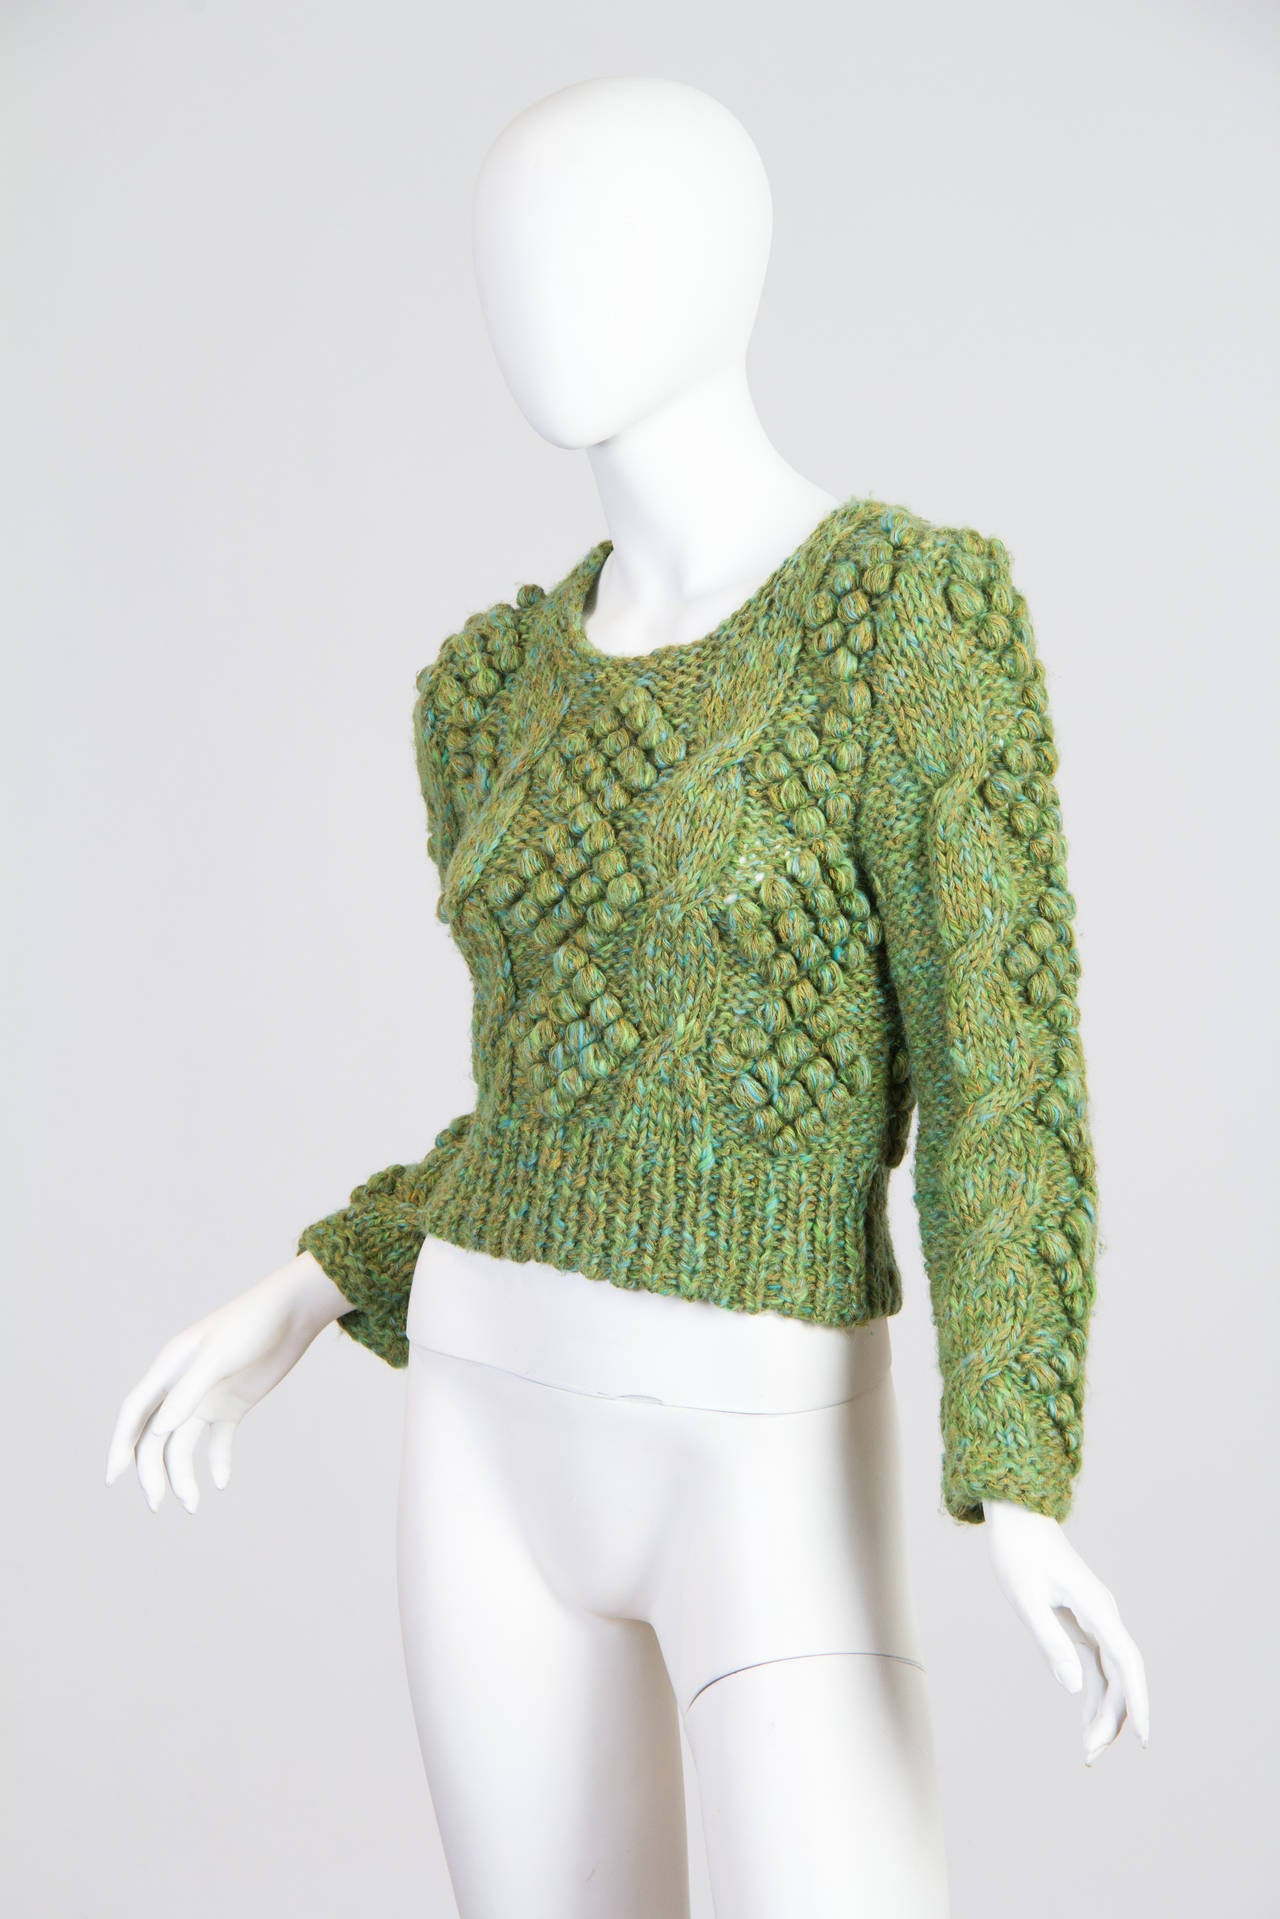 Gorgeous, and in very mint condition. A rare early piece from Kansai when he was still experimenting with 3-D knits.